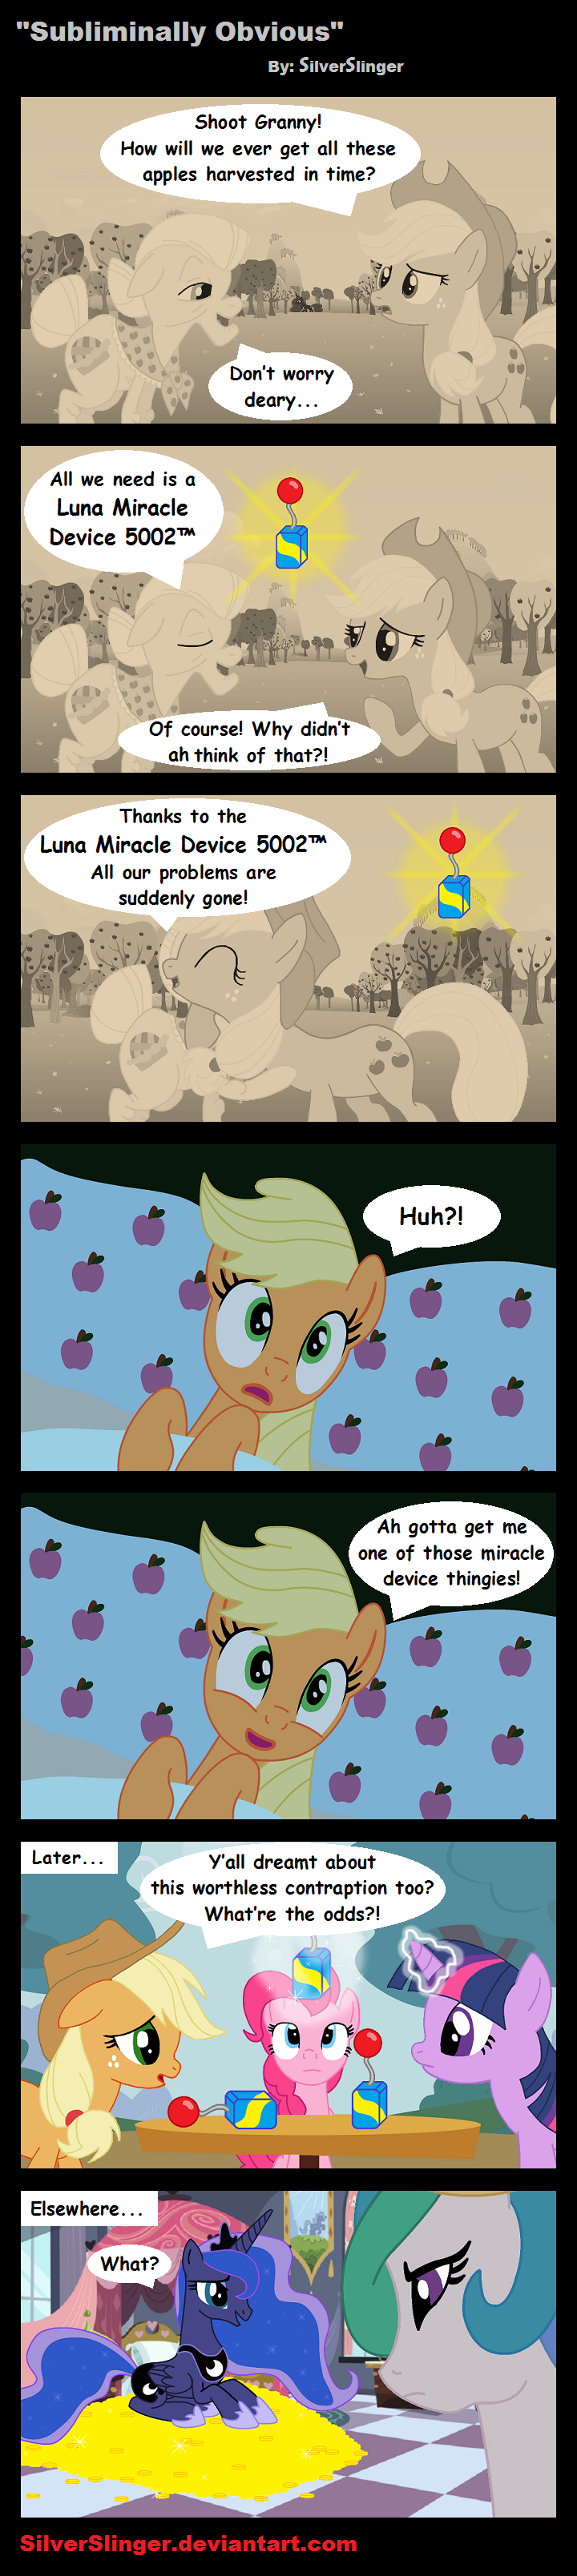 Subliminally Obvious by SilverSlinger